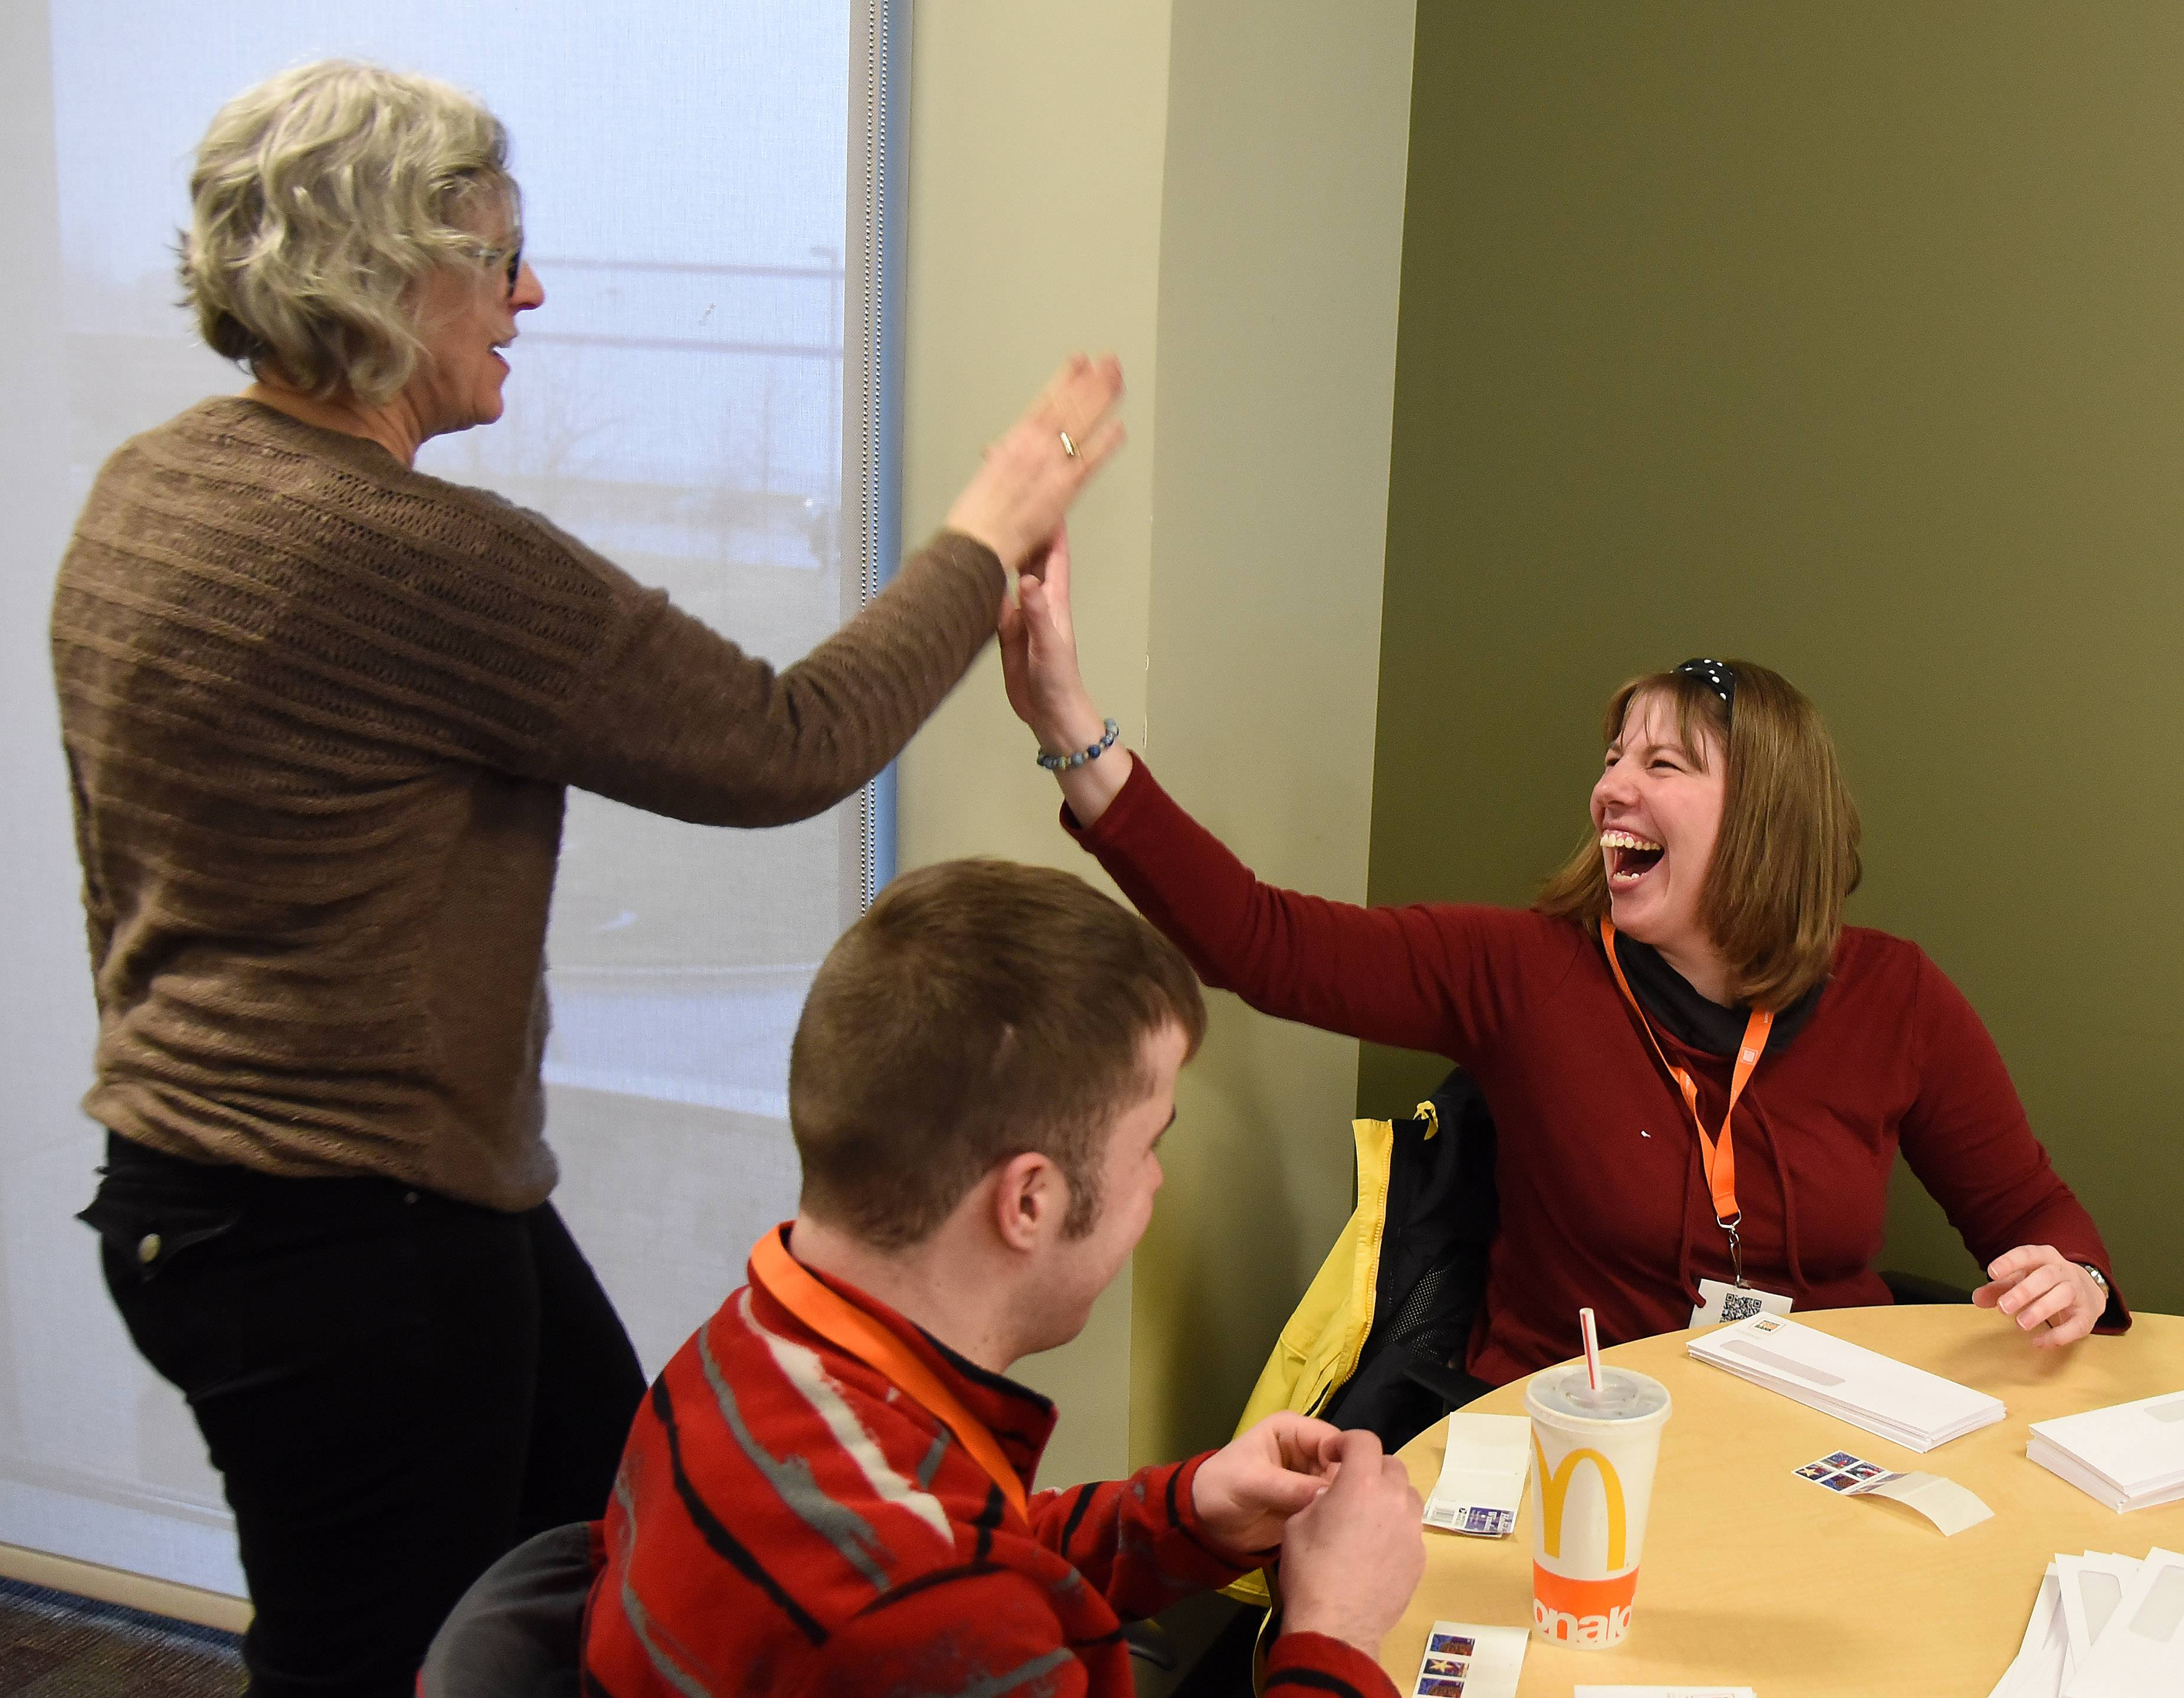 Joy Meade, left, high-fives Michelle Thompson, a Joshua Tree Community volunteer, at the Northern Illinois Food Bank in Geneva on Jan. 16. Meade is donor services coordinator at NIFB.